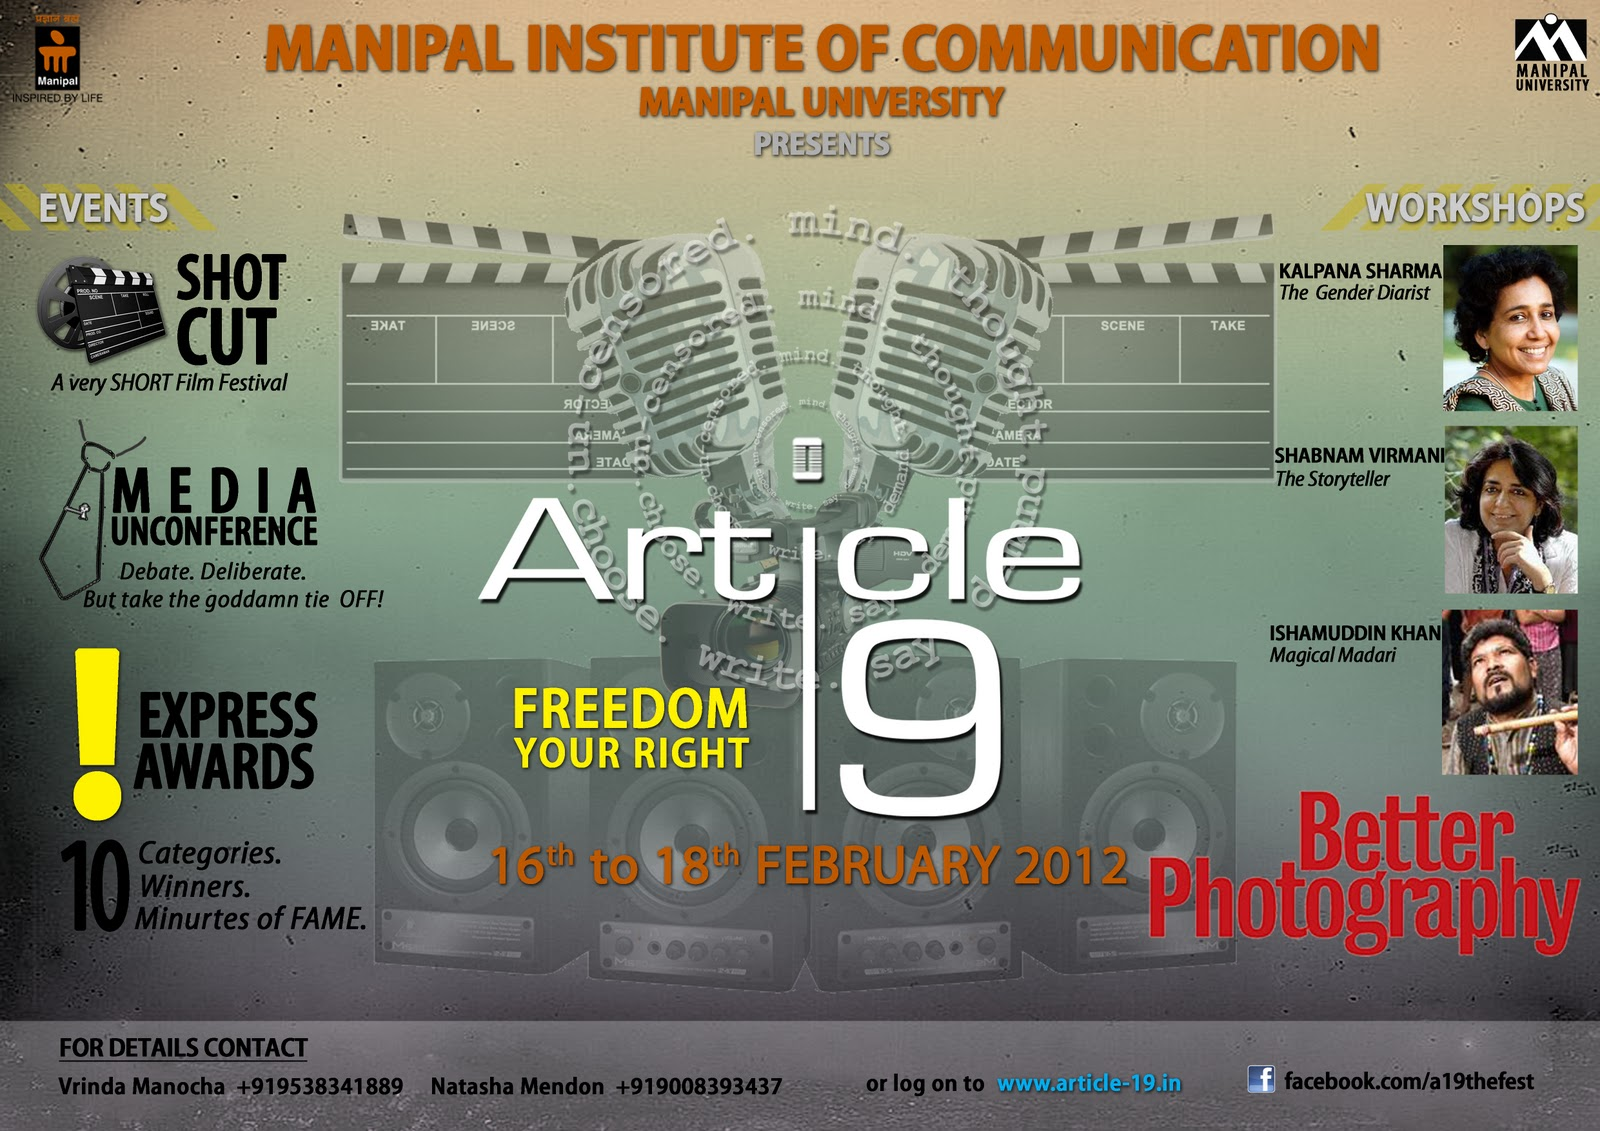 Poster design article - Here Showcased Are Some Posters I Had Designed For The Fest Article 19 2012 Conducted By Manipal Institute Of Communication Manipal University Manipal